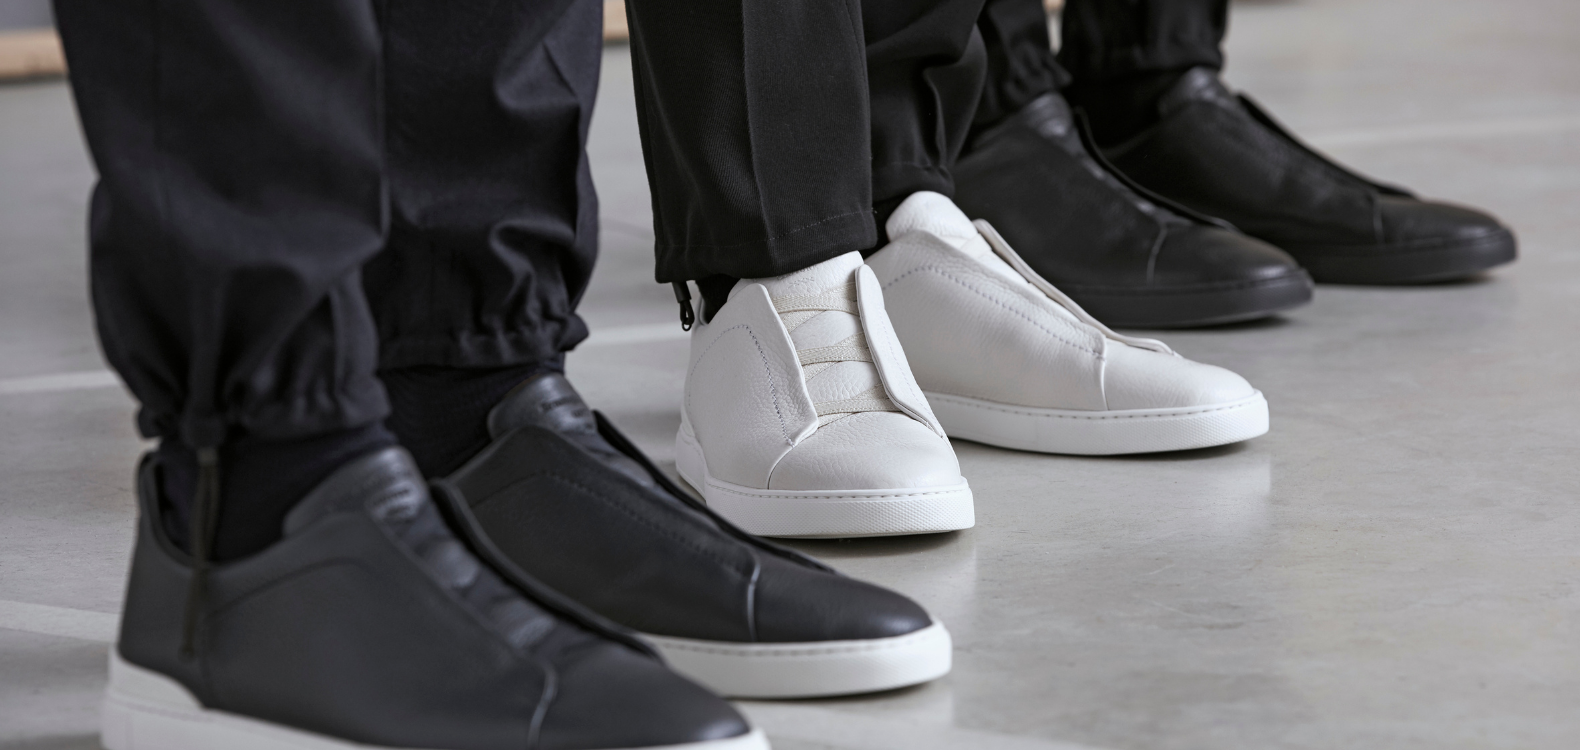 Hottest Men's Sneakers Right